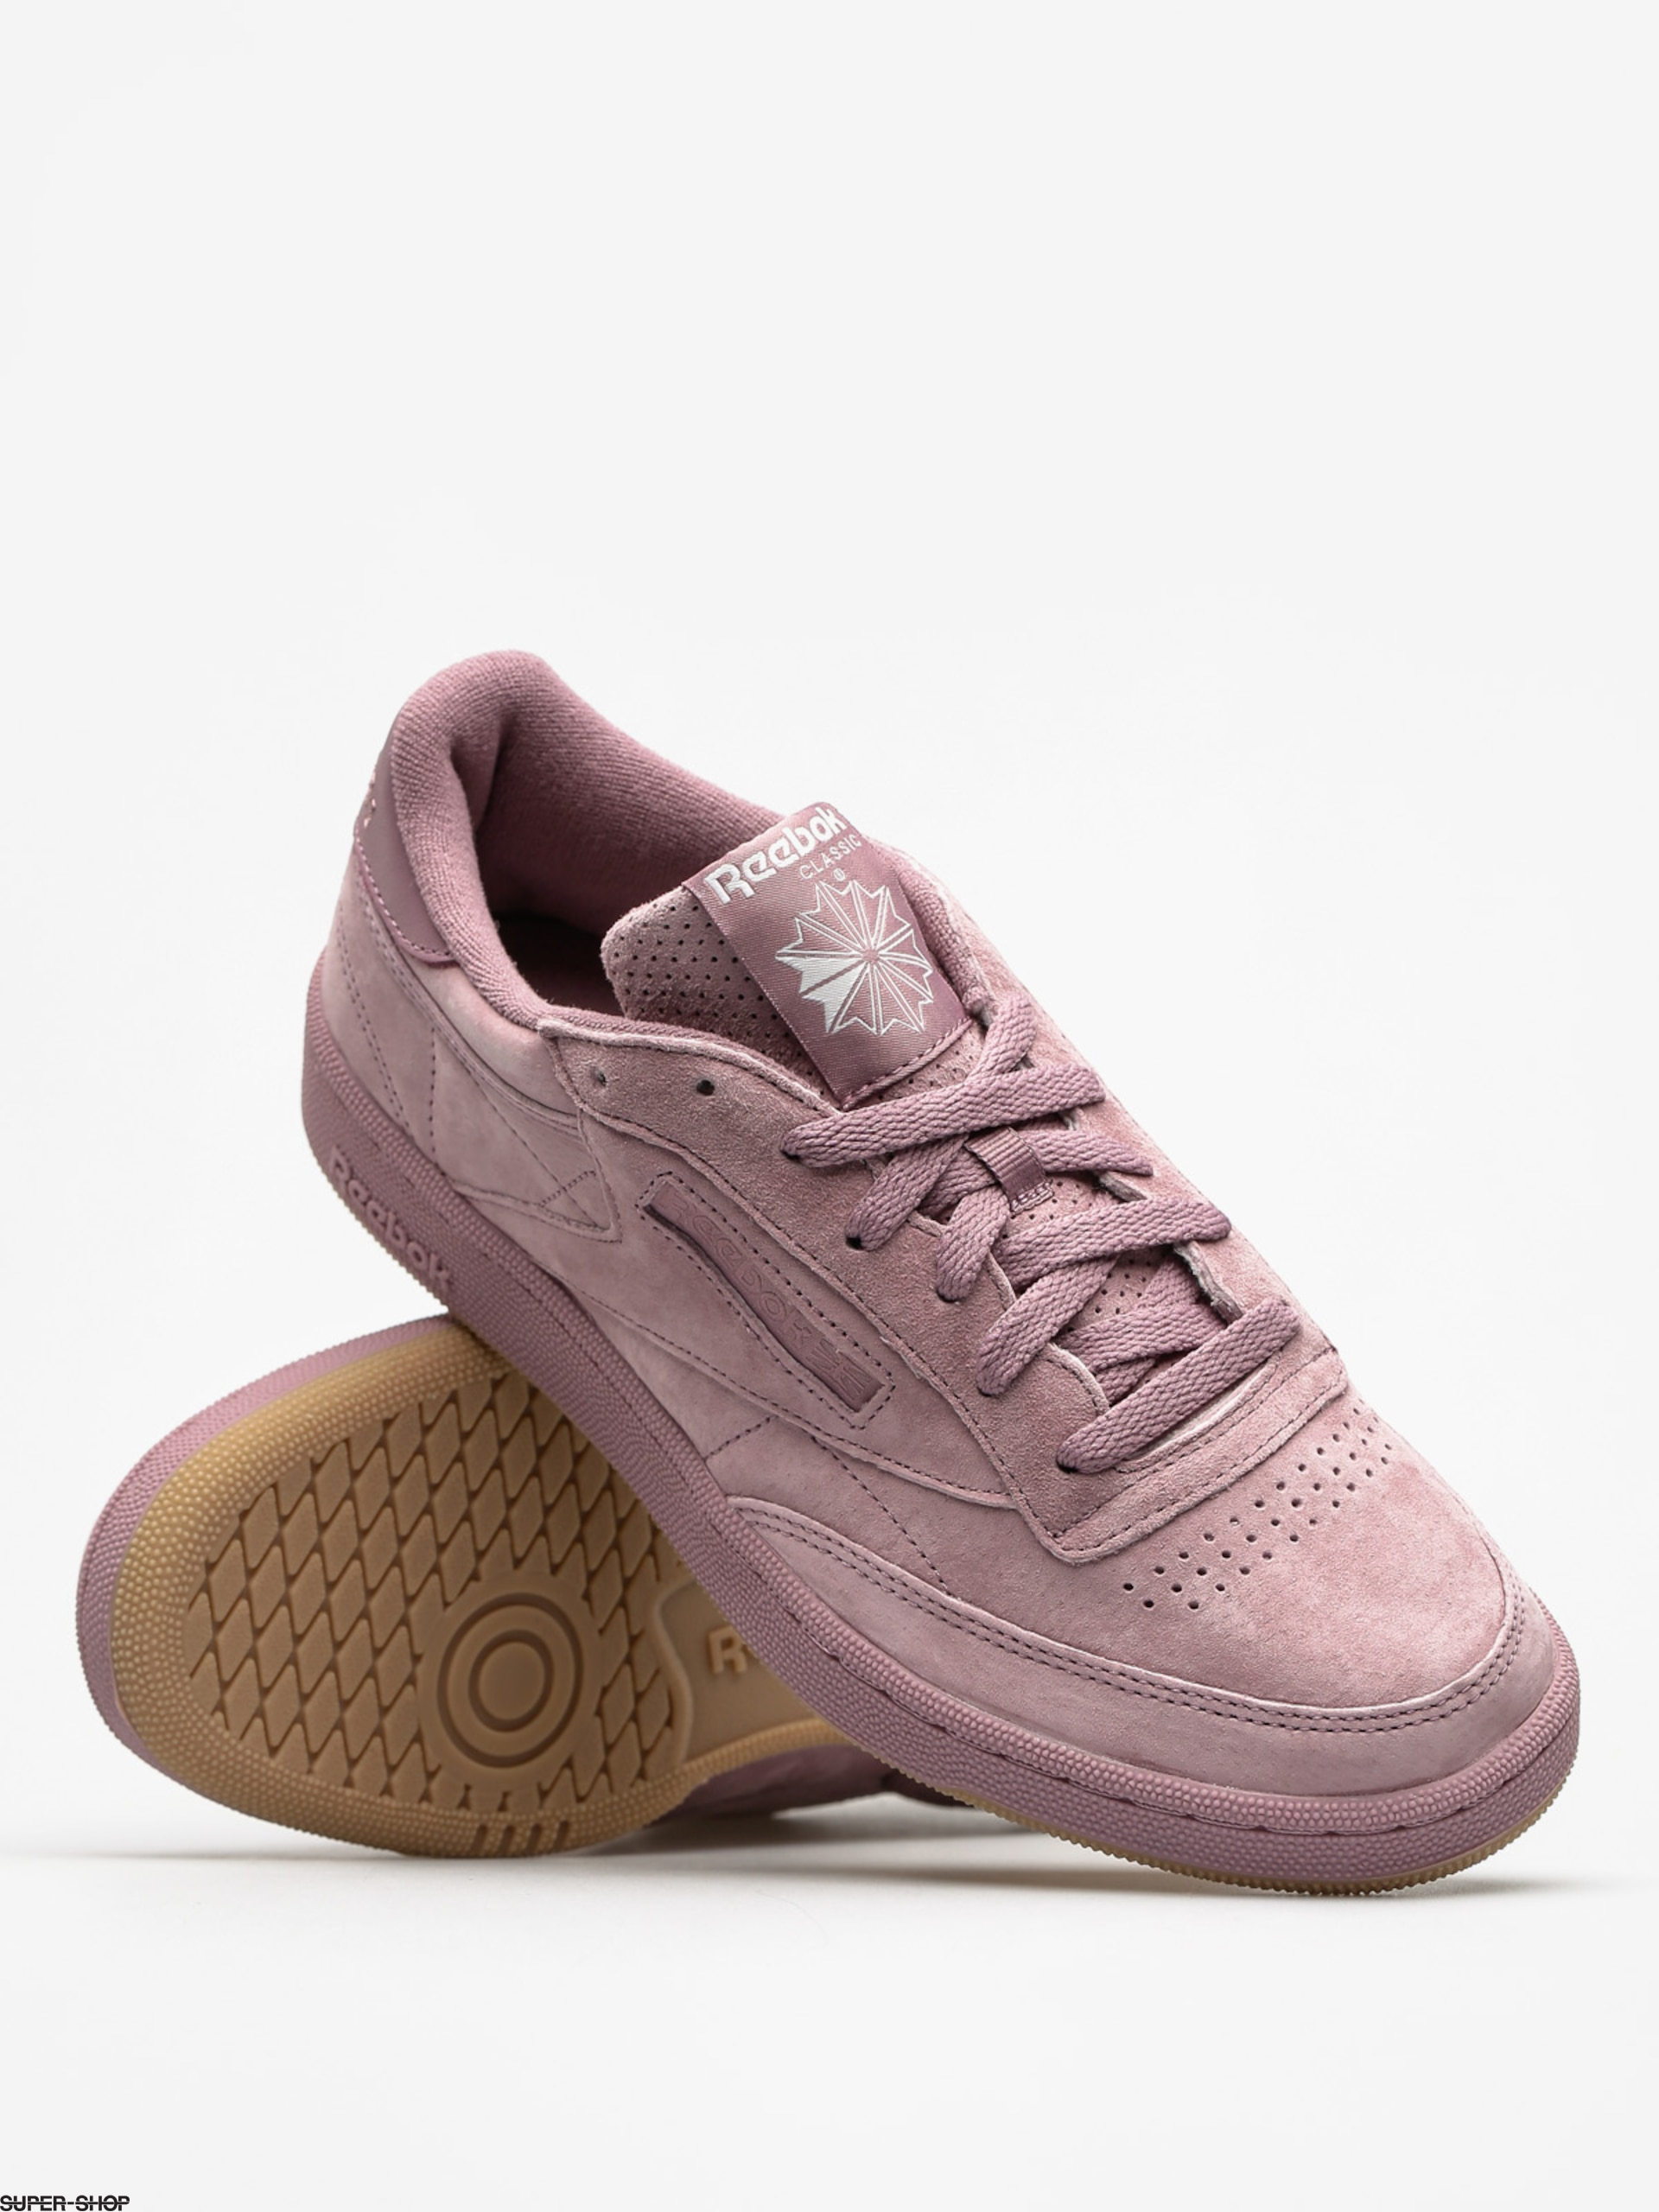 aef6b4558e2f Reebok Shoes Club C 85 Sg (smoky orchid white gu)